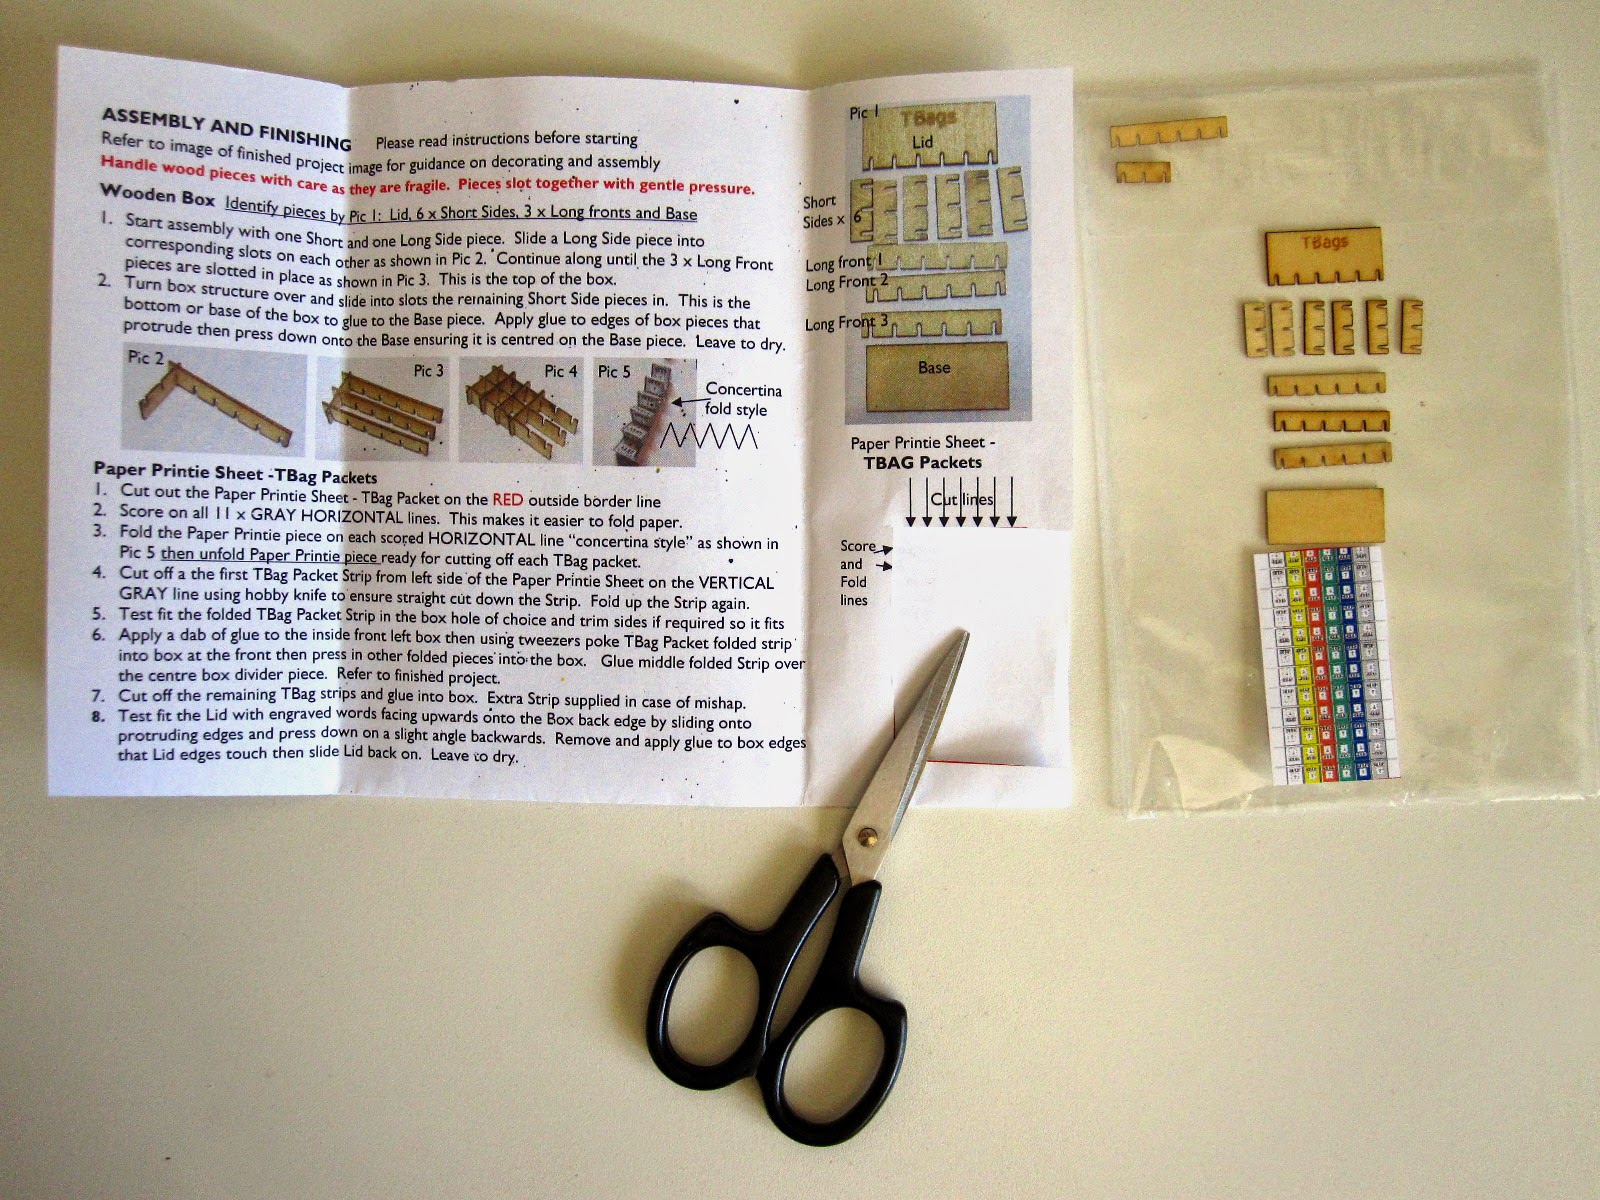 Modern dolls' house miniature tea bag box kit, laid out ready for assembly.